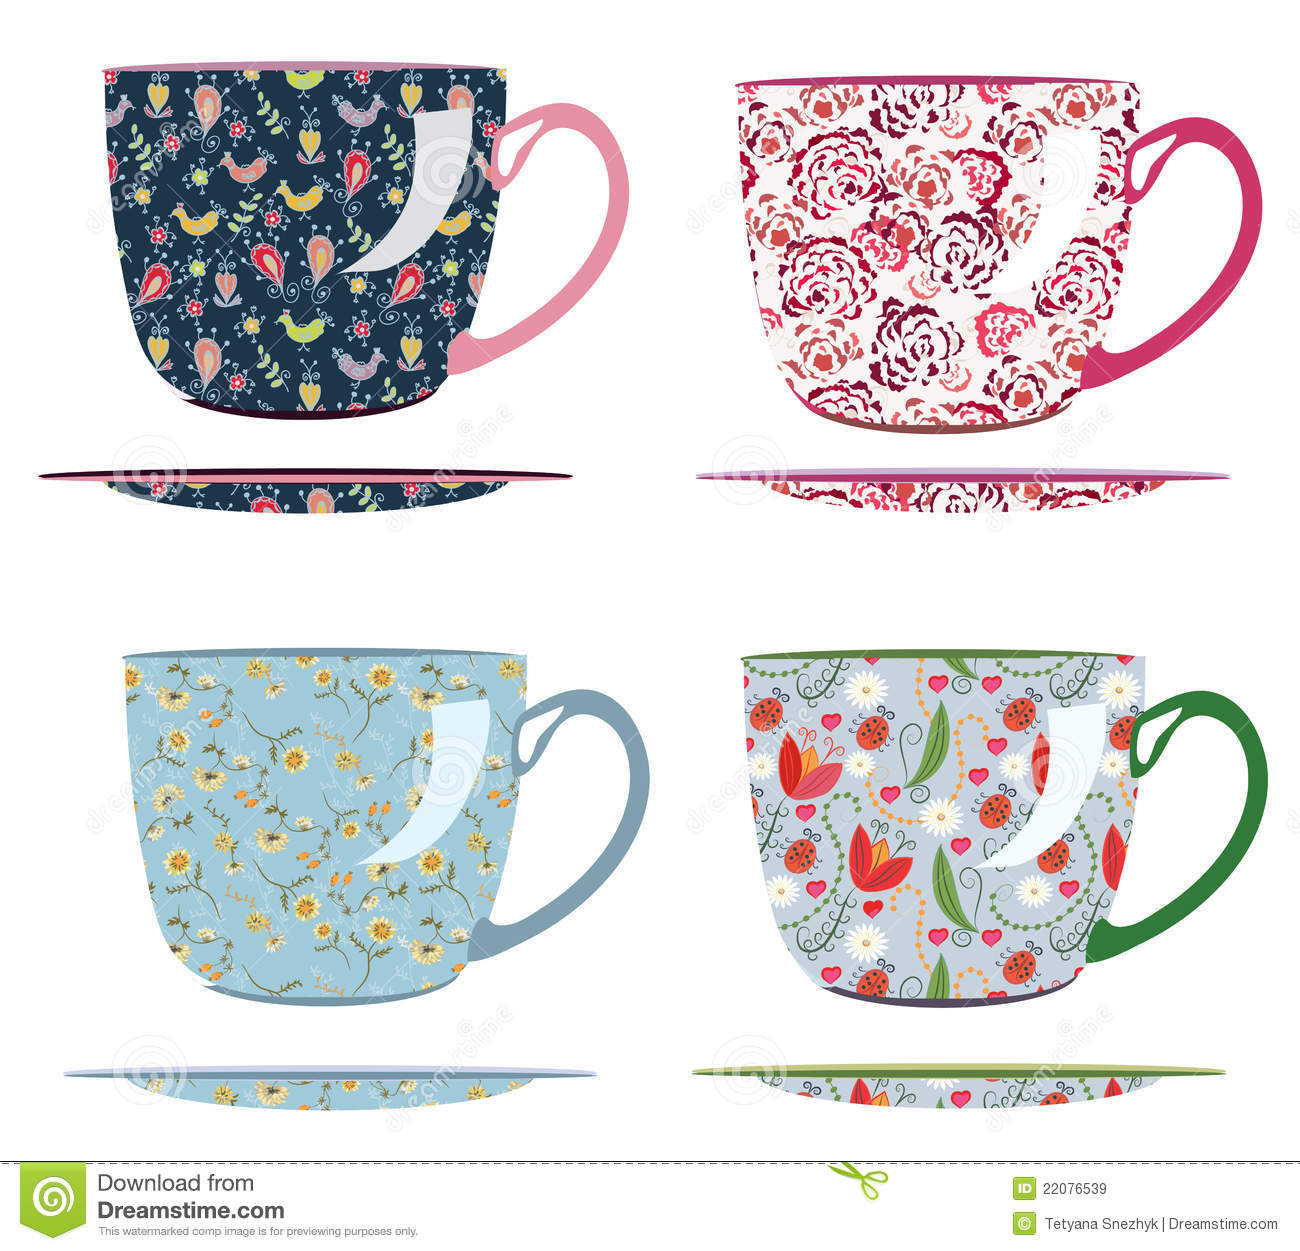 Cups for tea with patterns